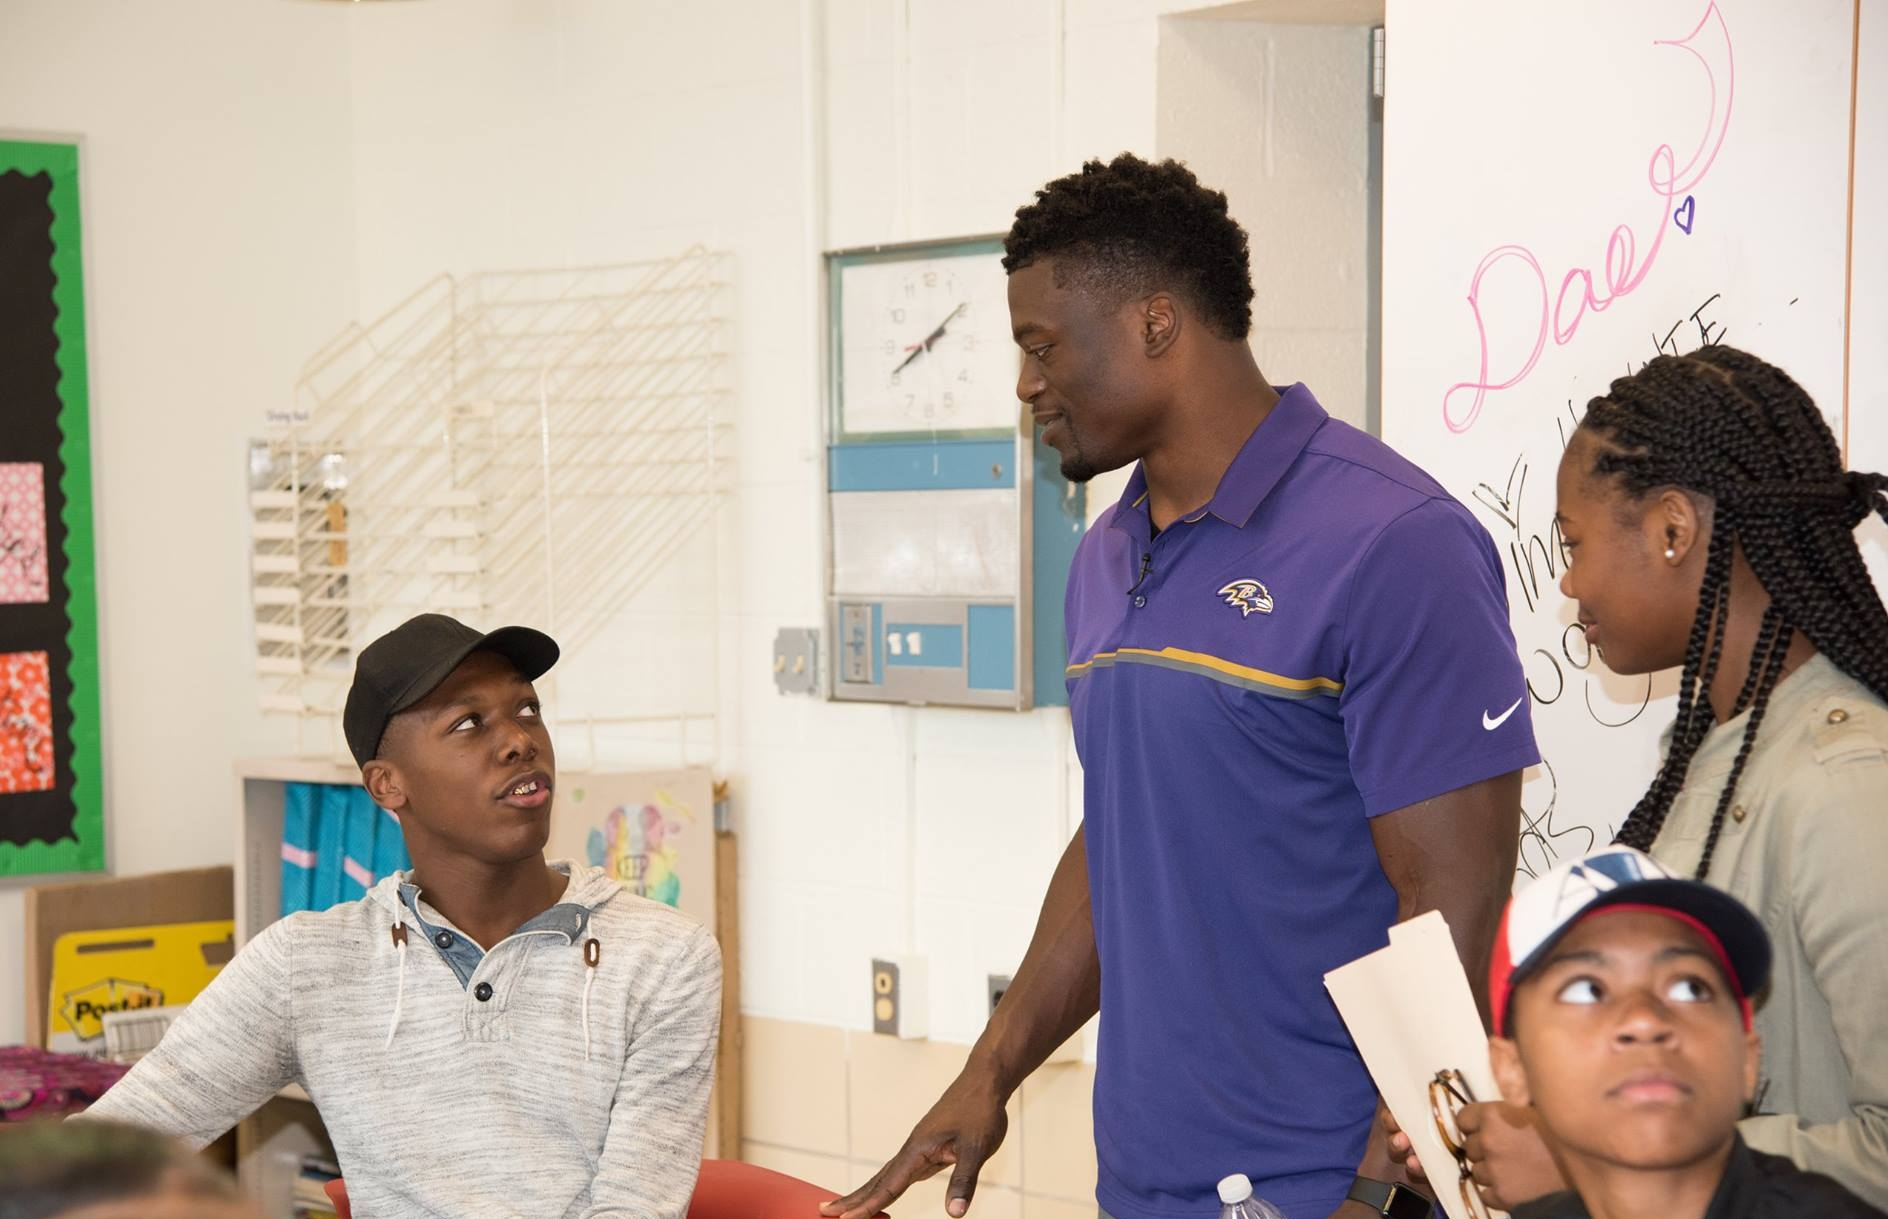 Renaissance Academy Senior Tyshaun Wallace speaks to Ravens tight end Benjamin Watson after the press conference on Monday, September 18, 2017.